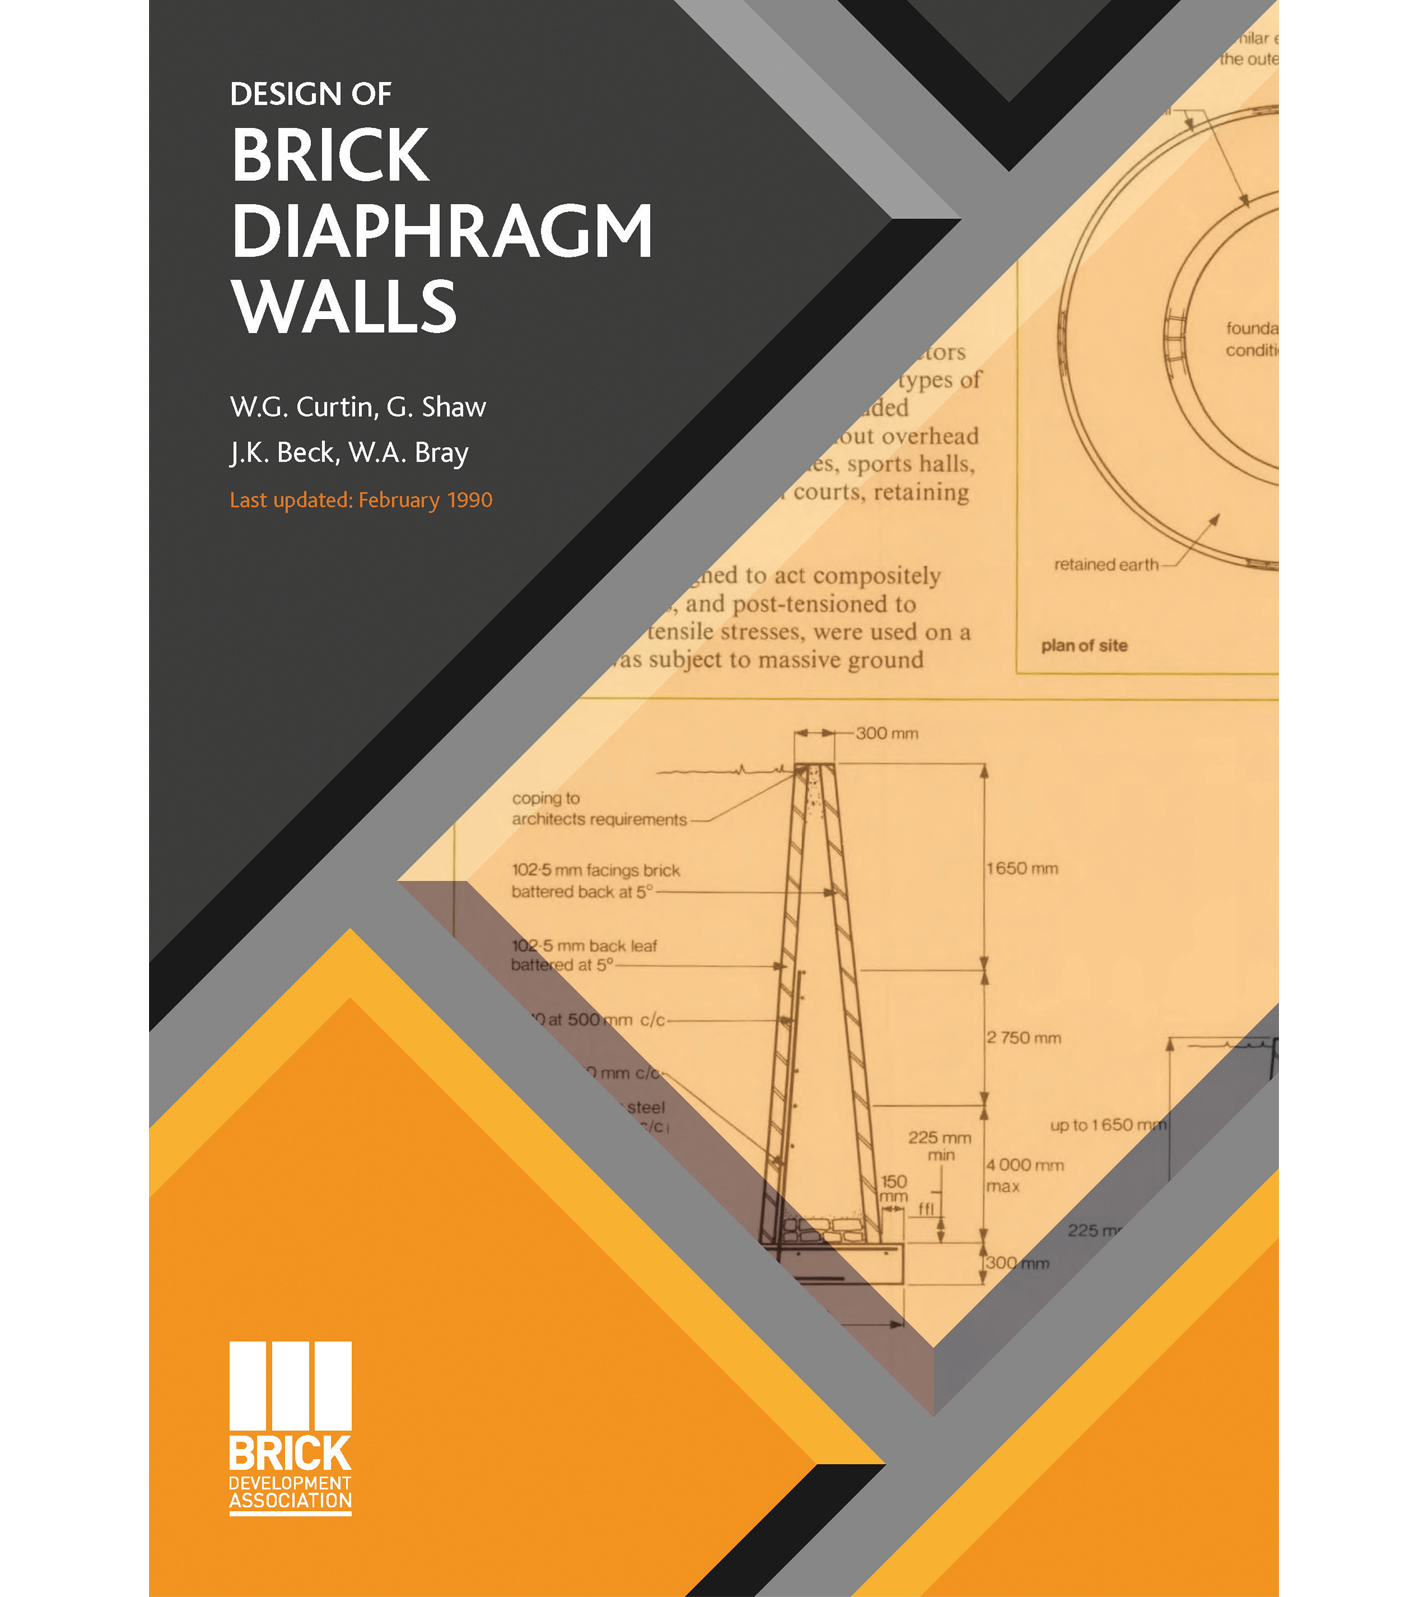 BRICK DIAPHRAM WALLS